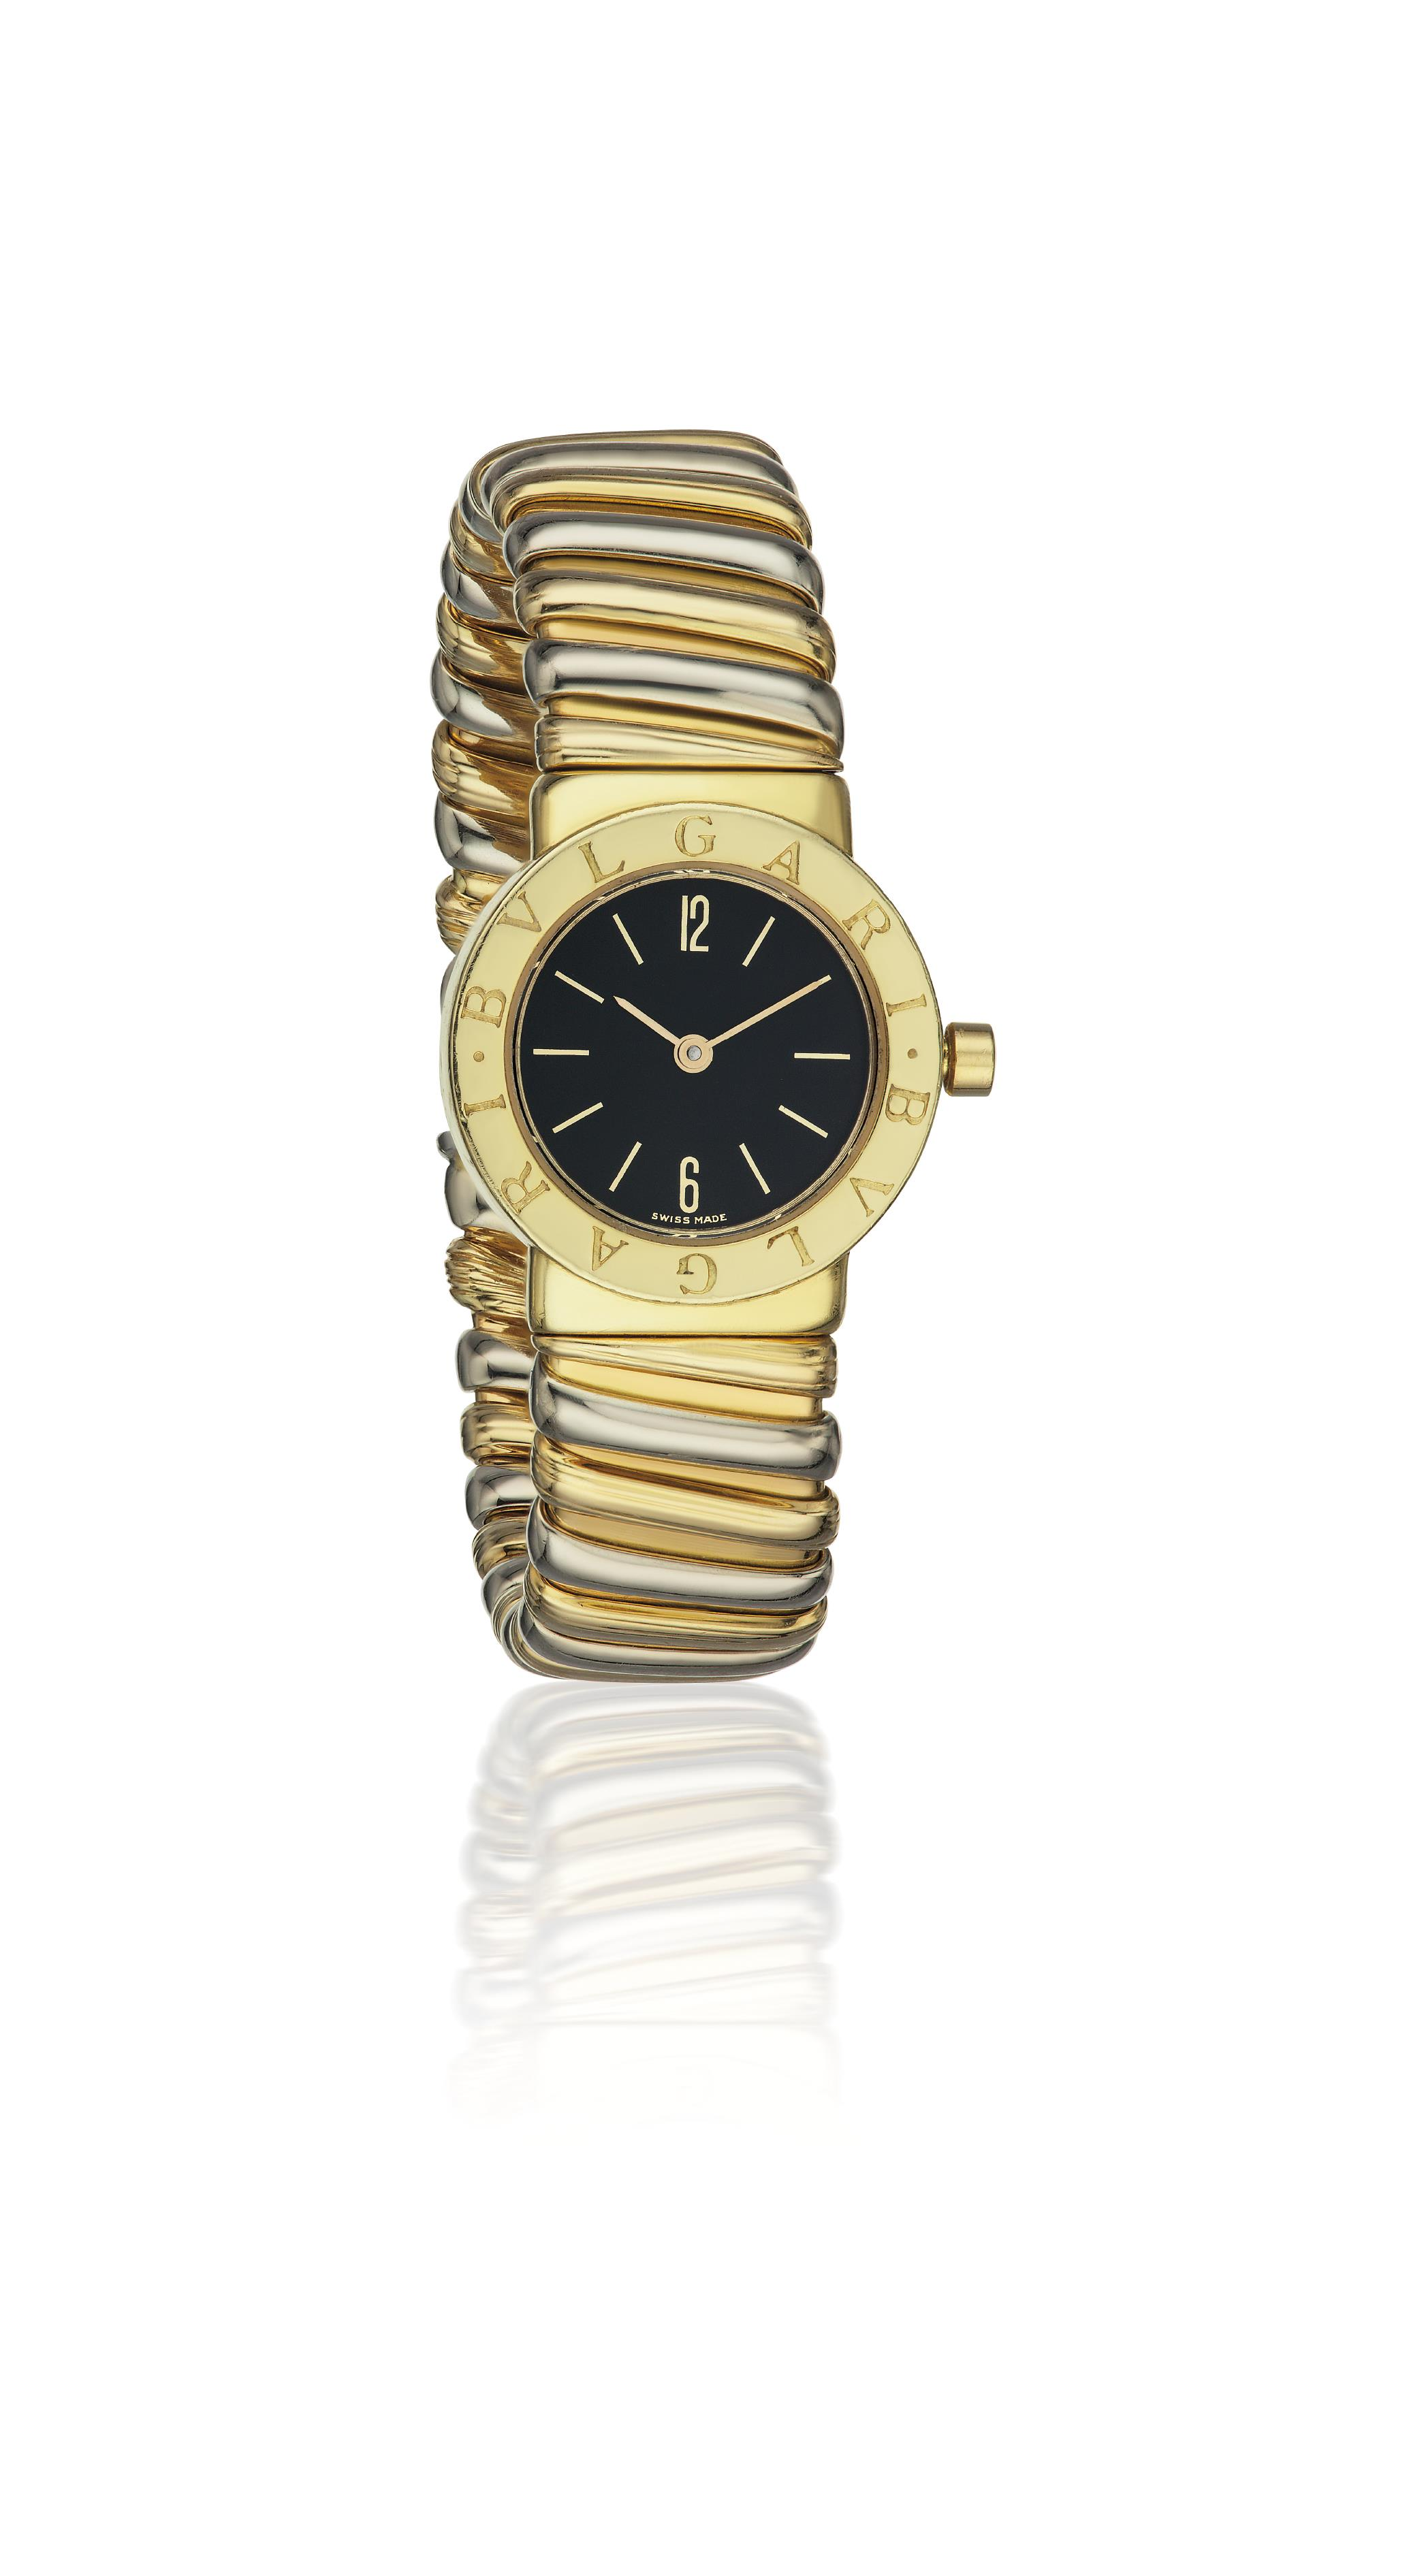 A Lady's Gold 'Monte Carlo' Wristwatch